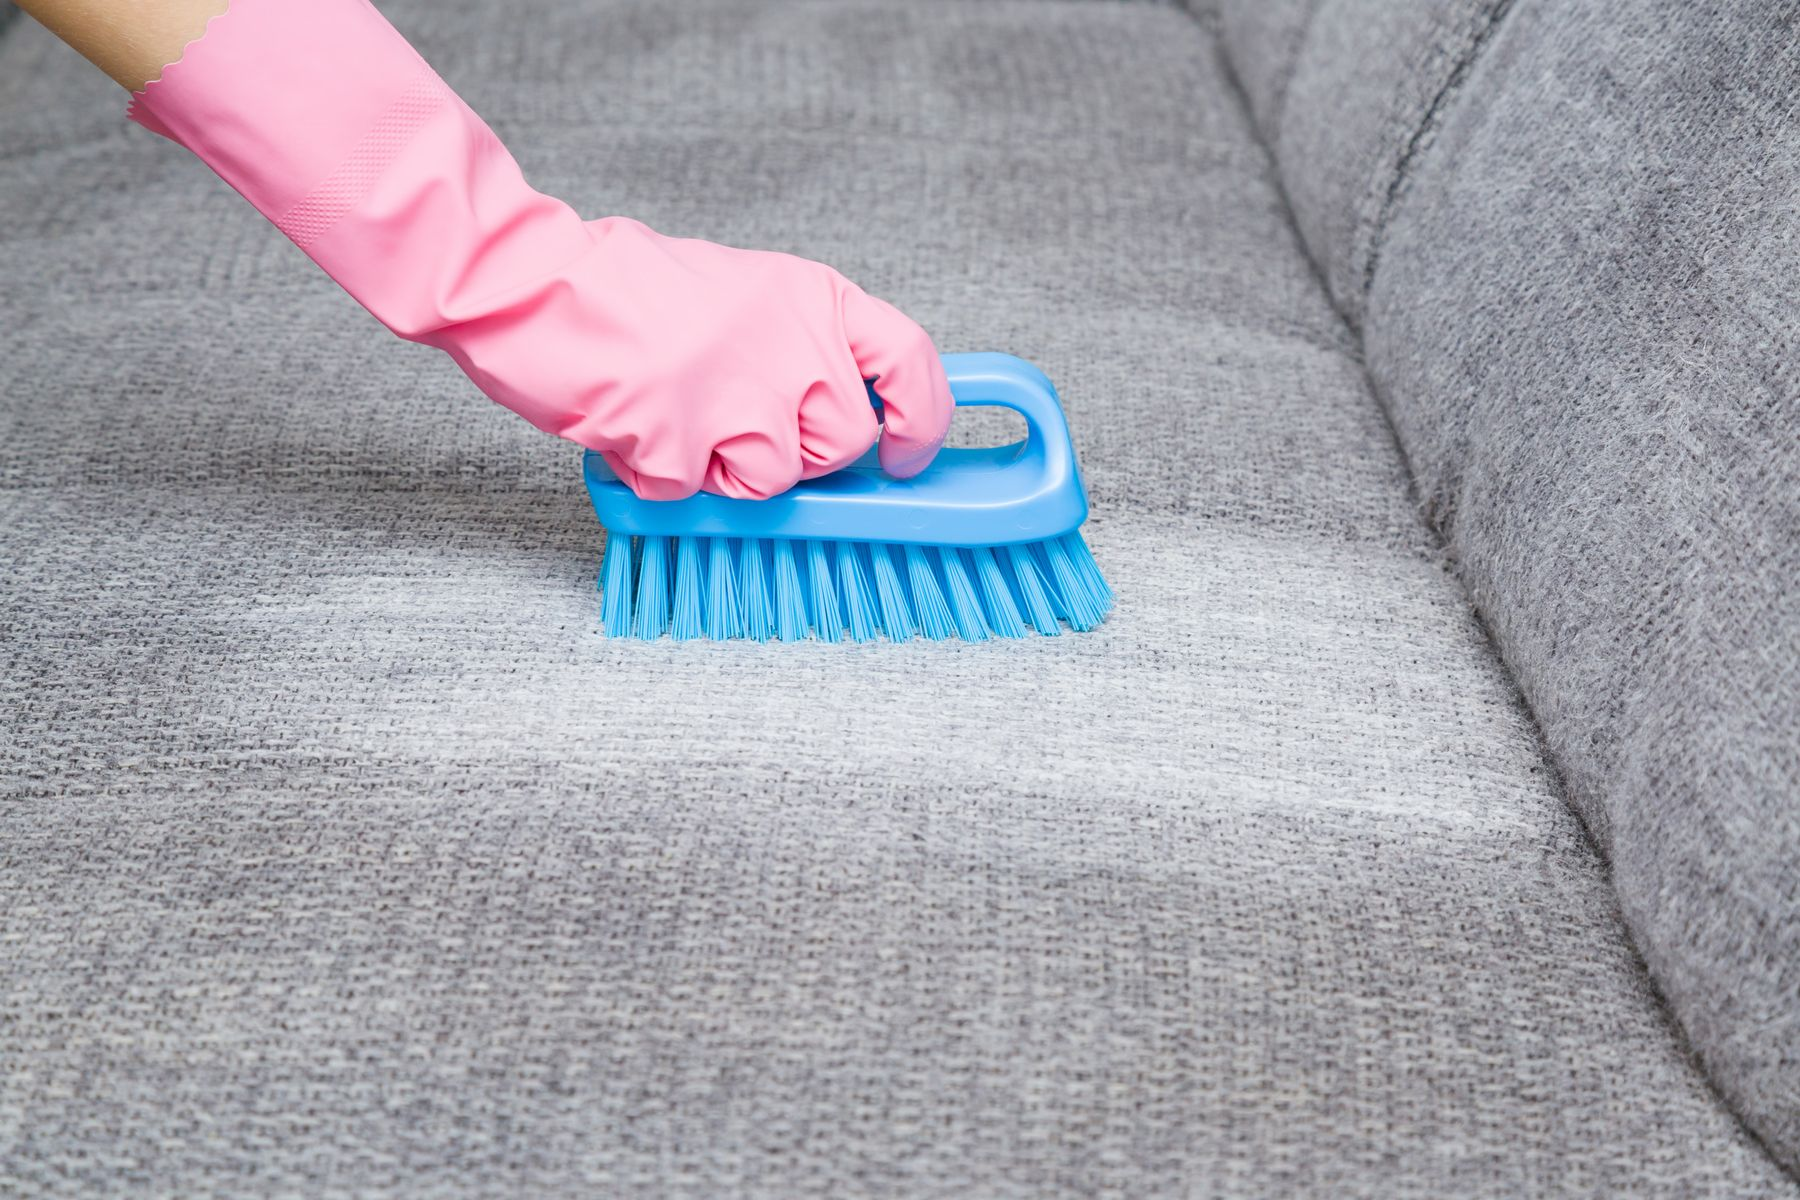 person wearing a pink glove cleaning a grey sofa with a blue brush